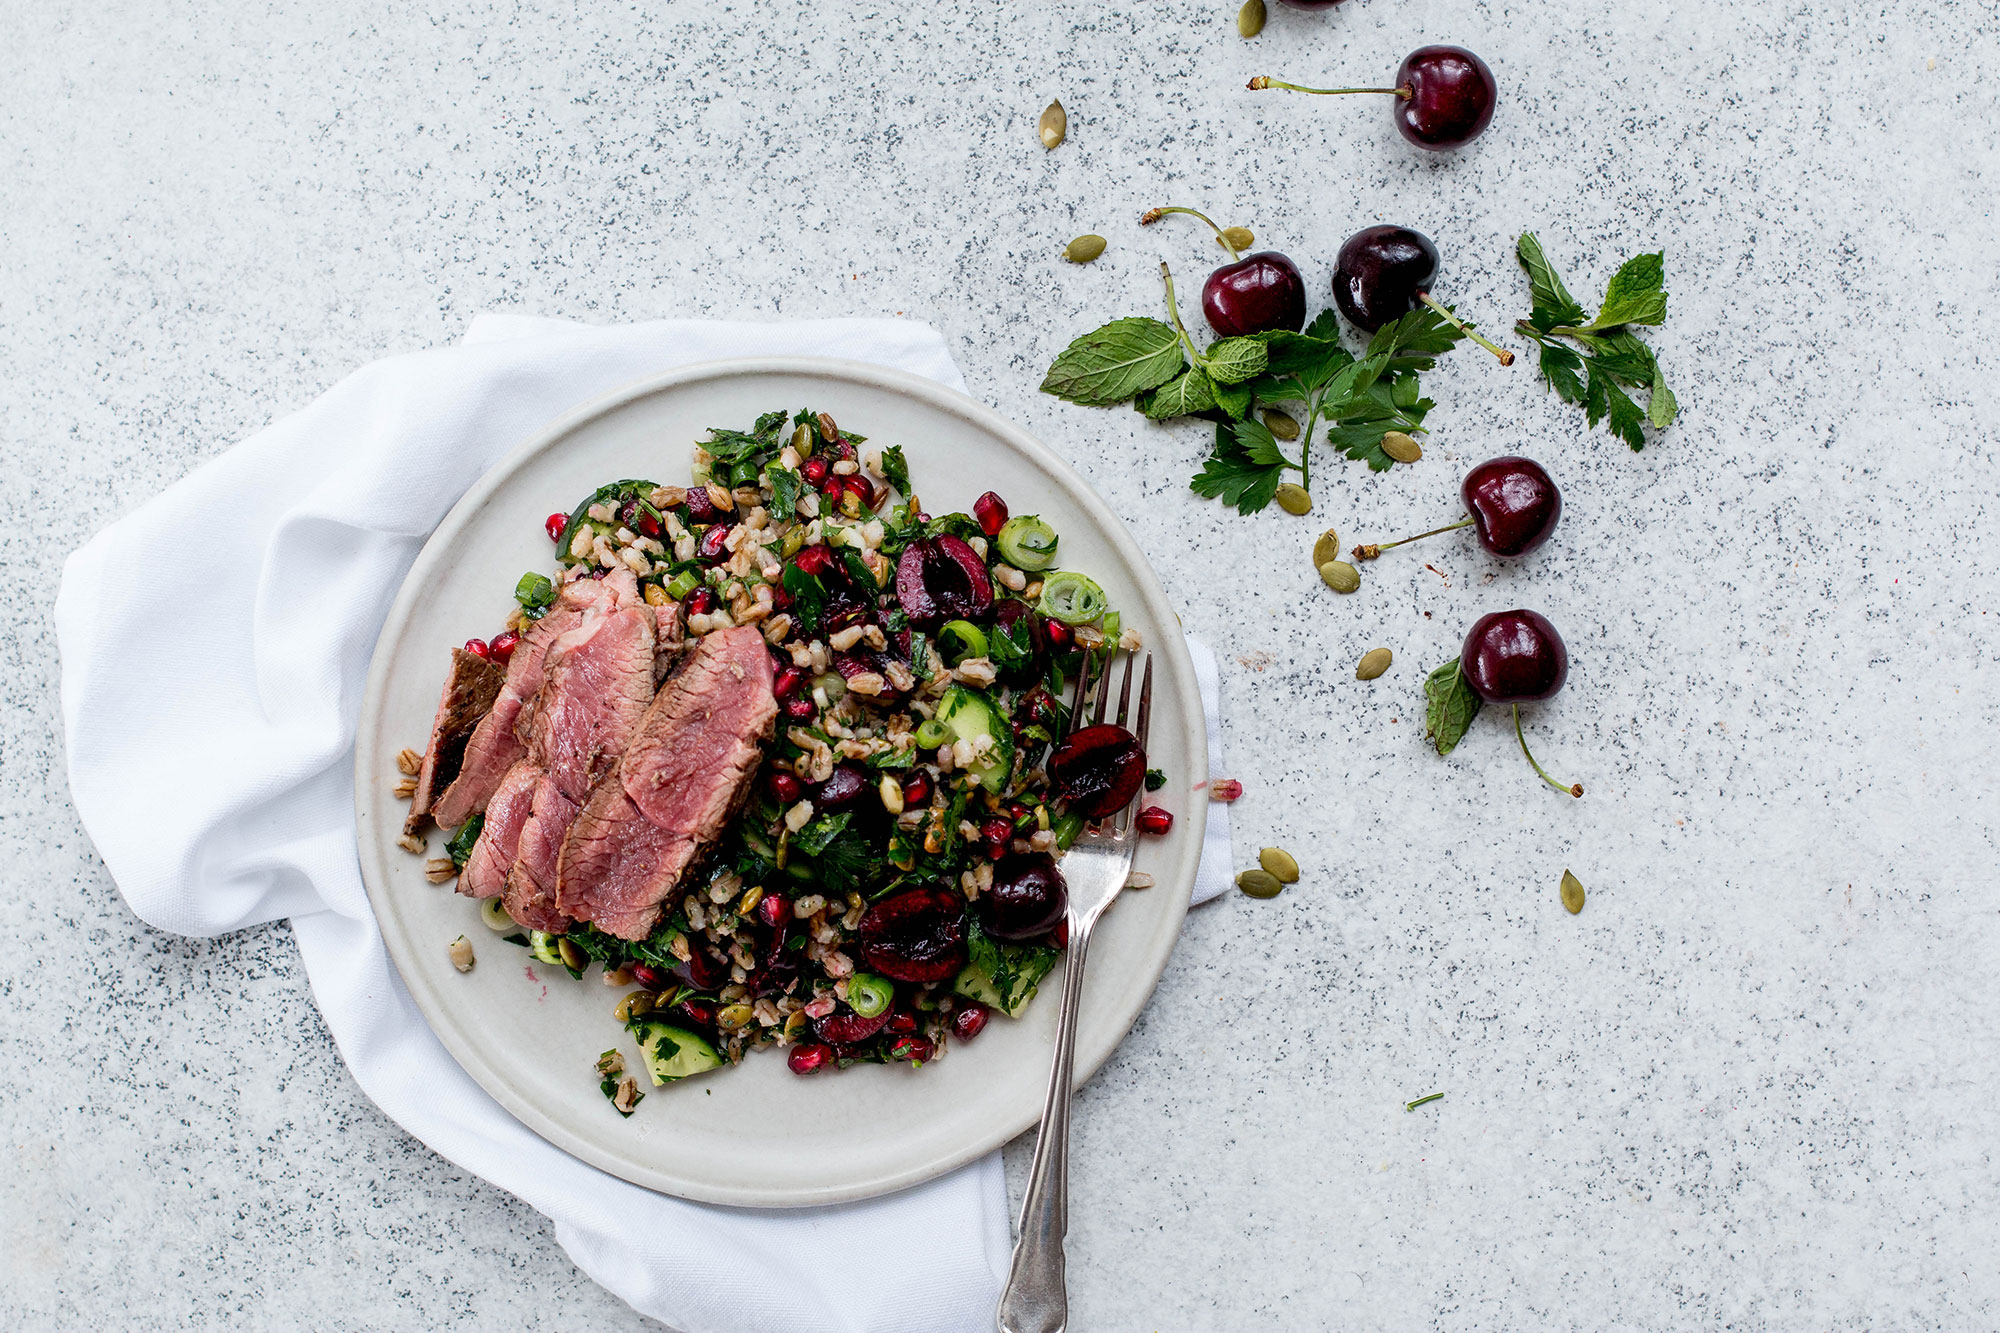 Cherry-&-Pomegranate-Tabouli-with-Lamb-2.jpg